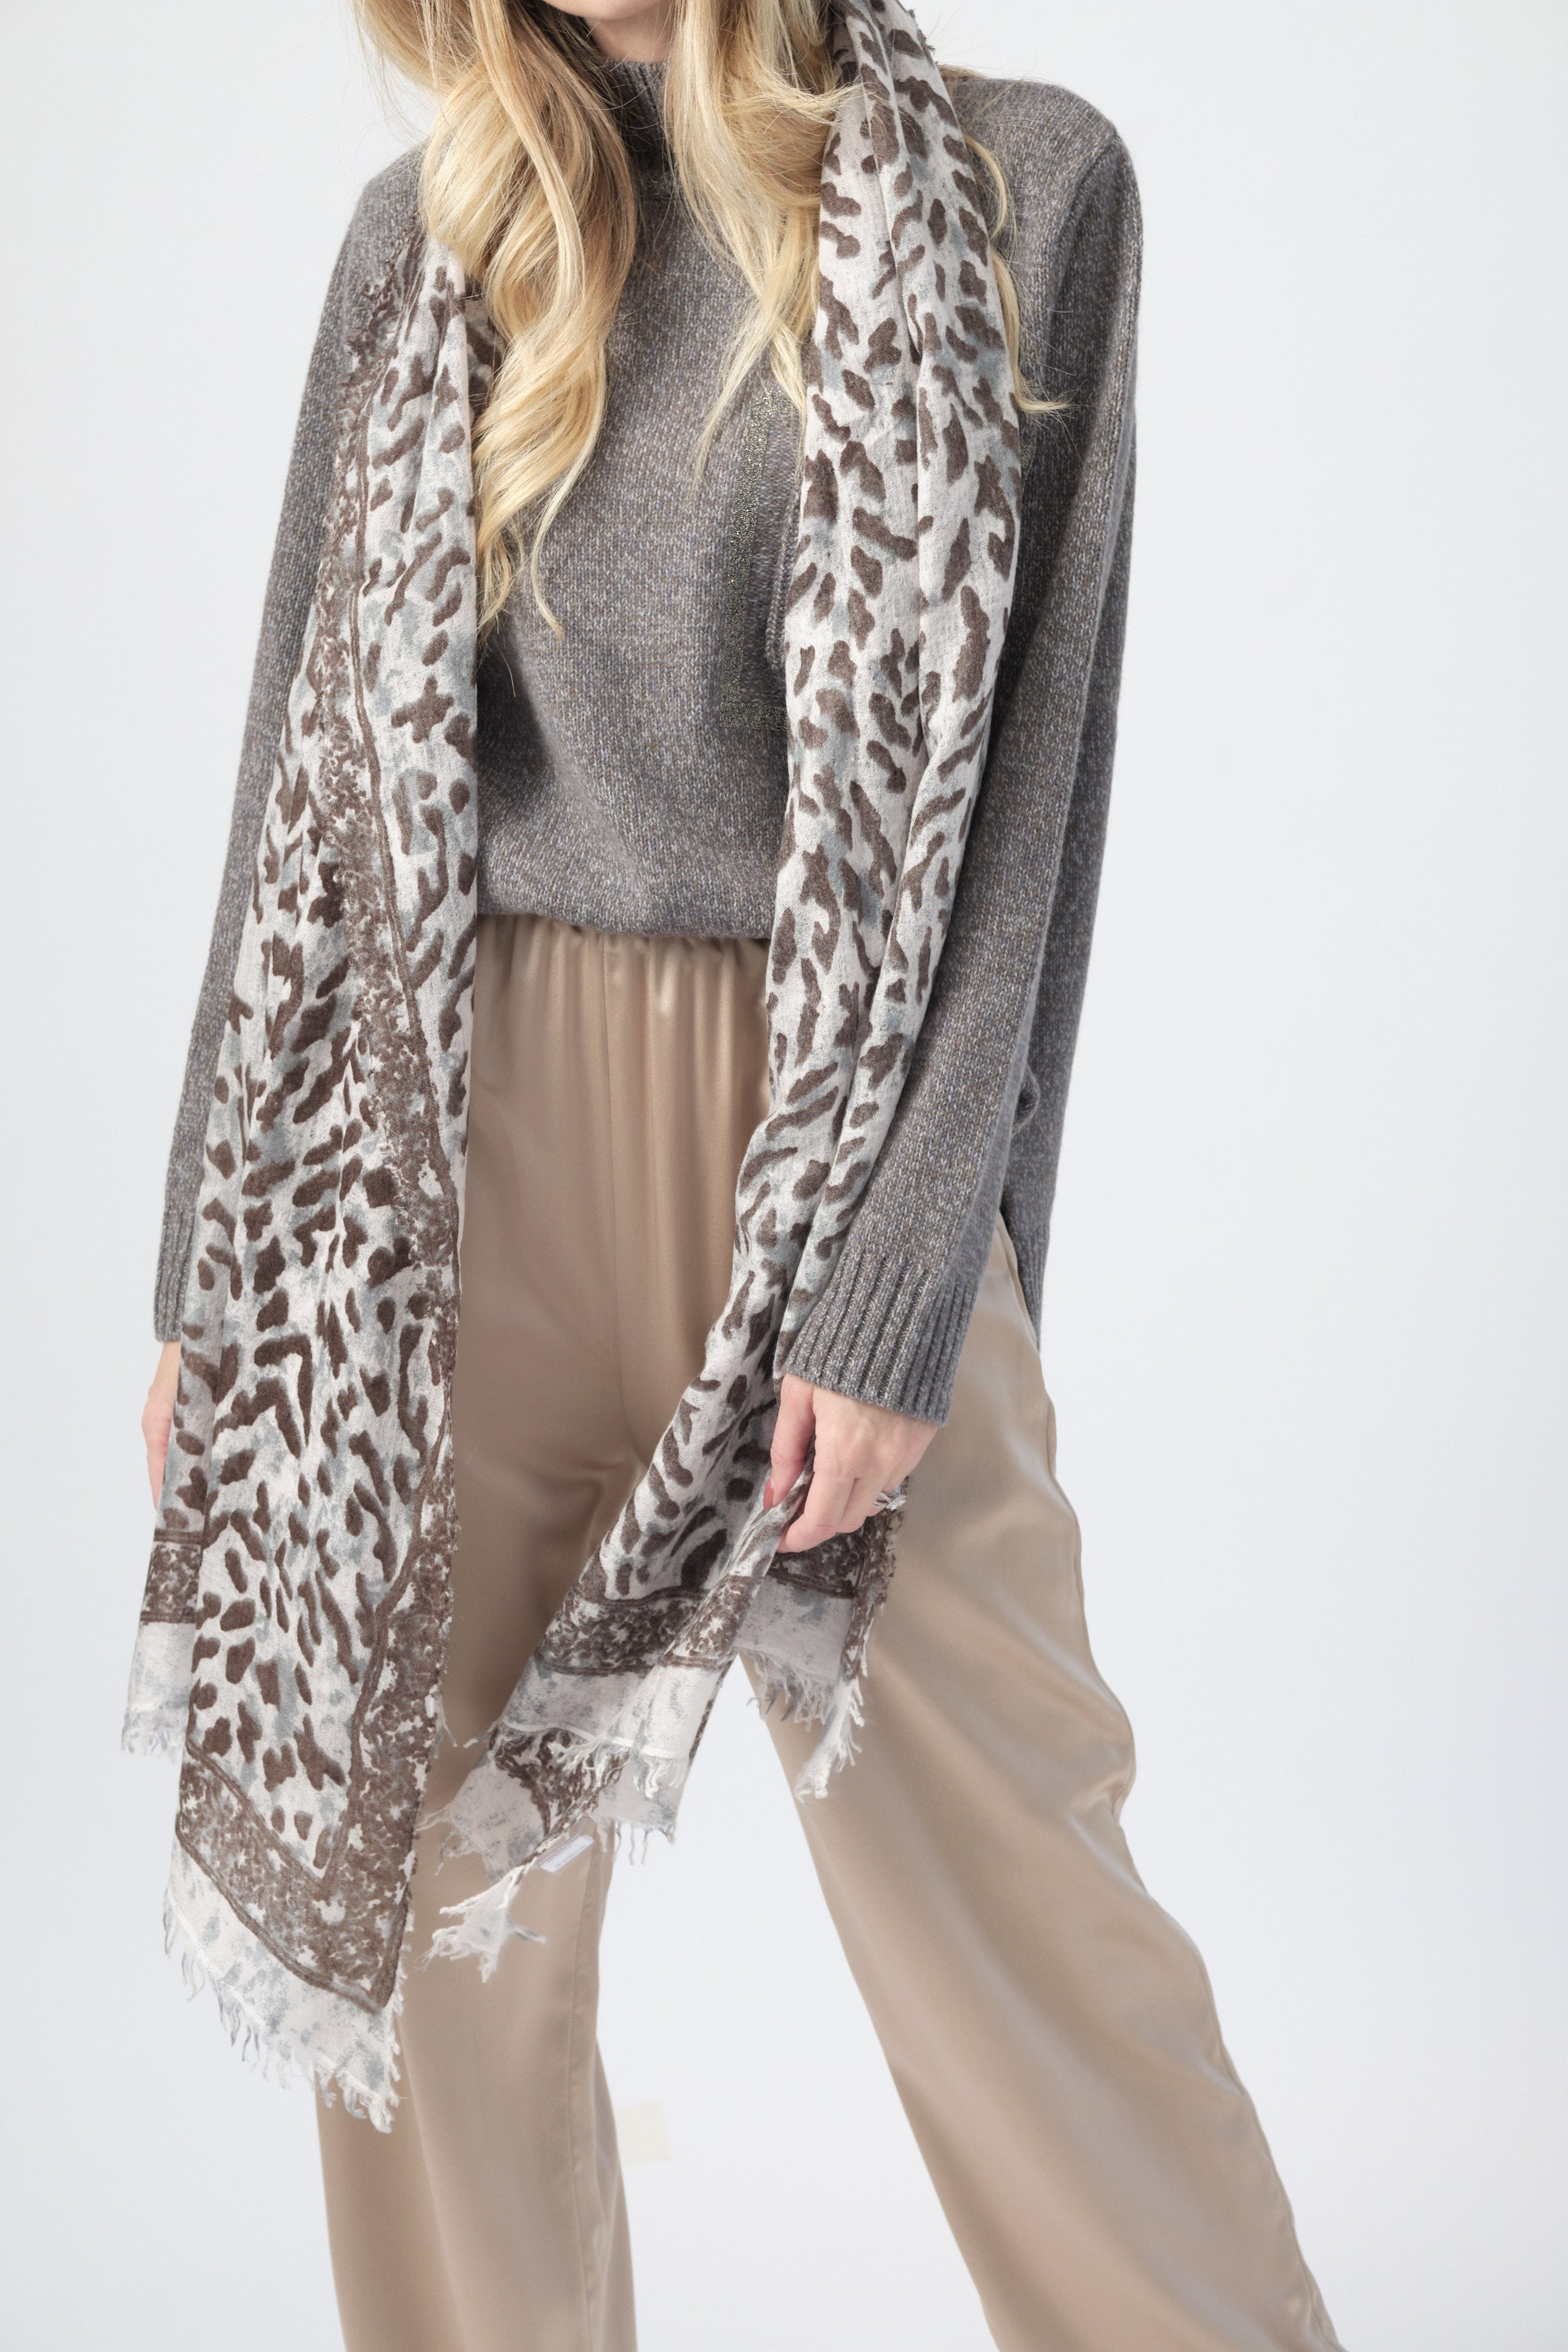 Wool Scarf in Animal Print